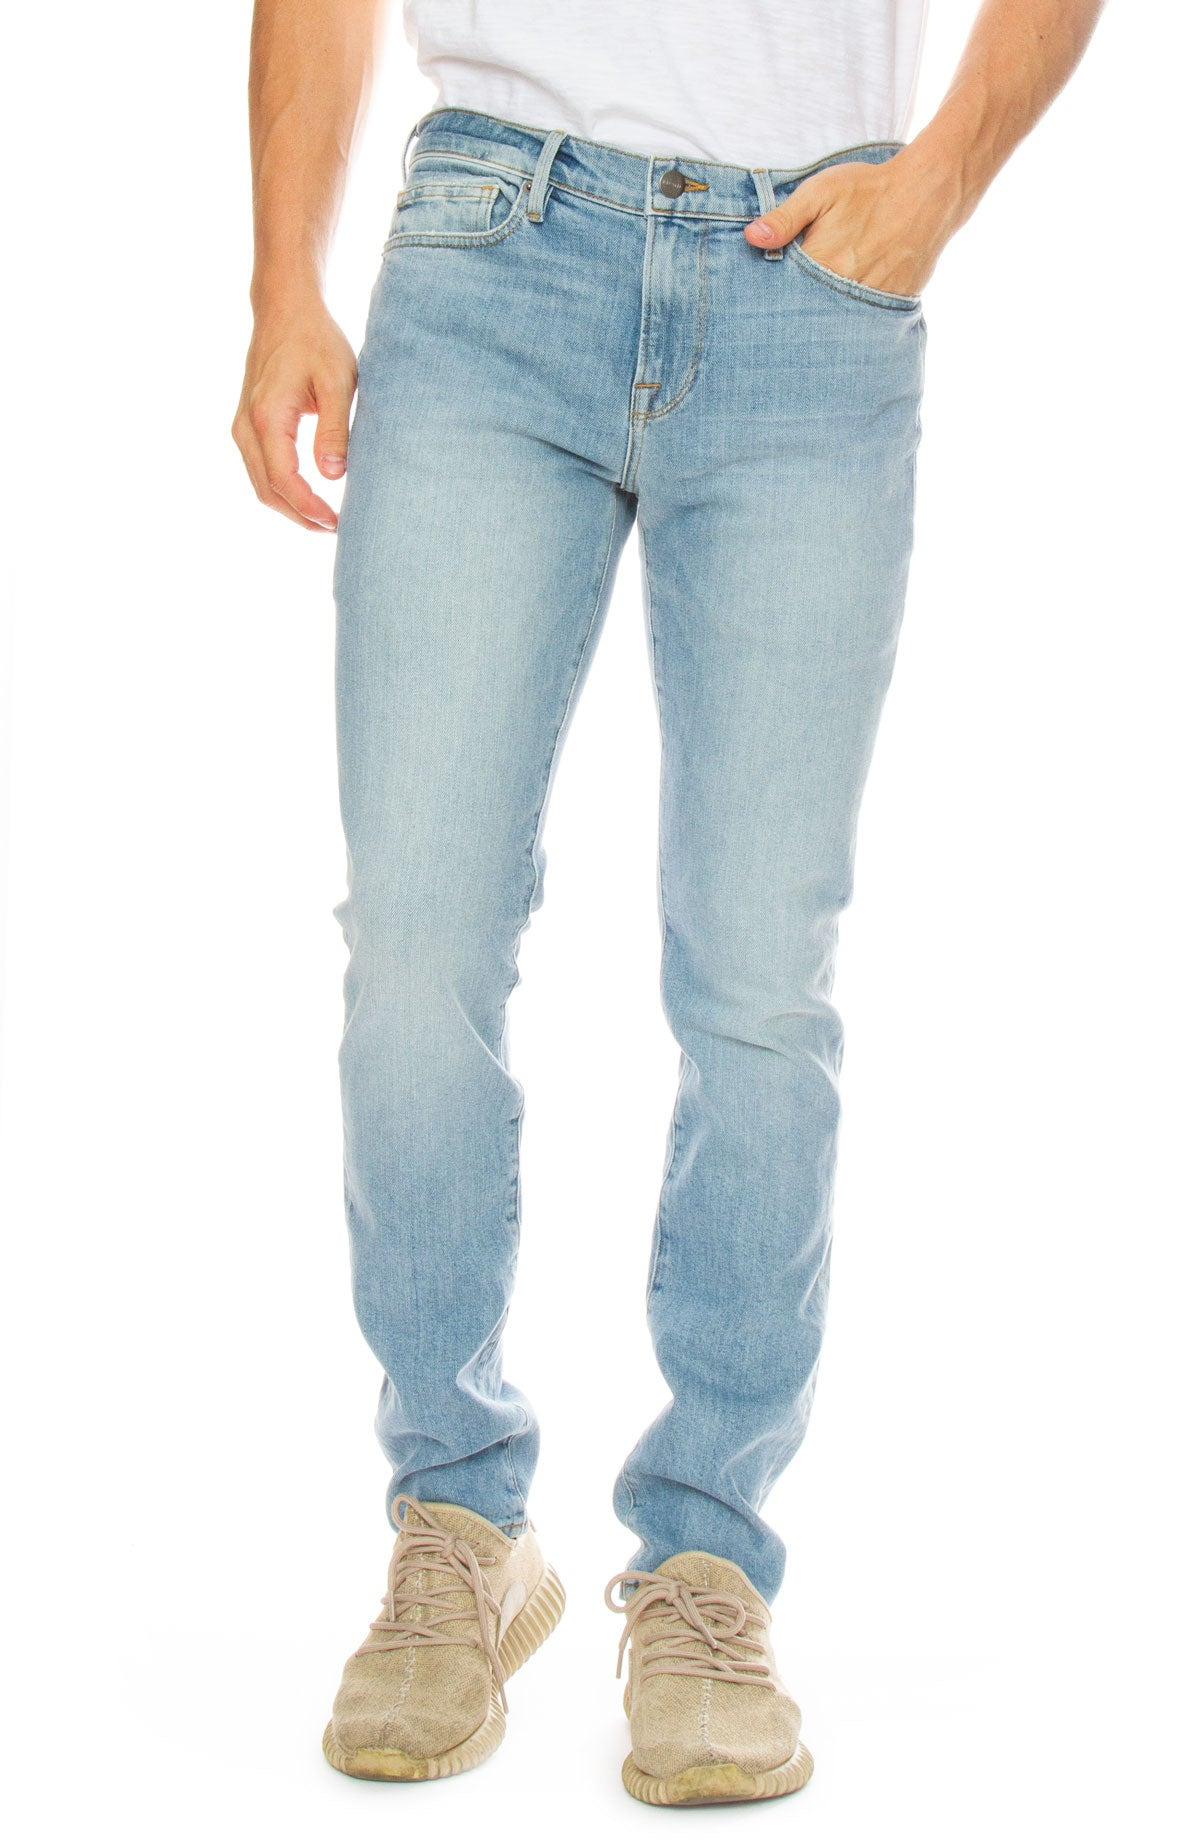 L'Homme Skinny-Fit Jeans